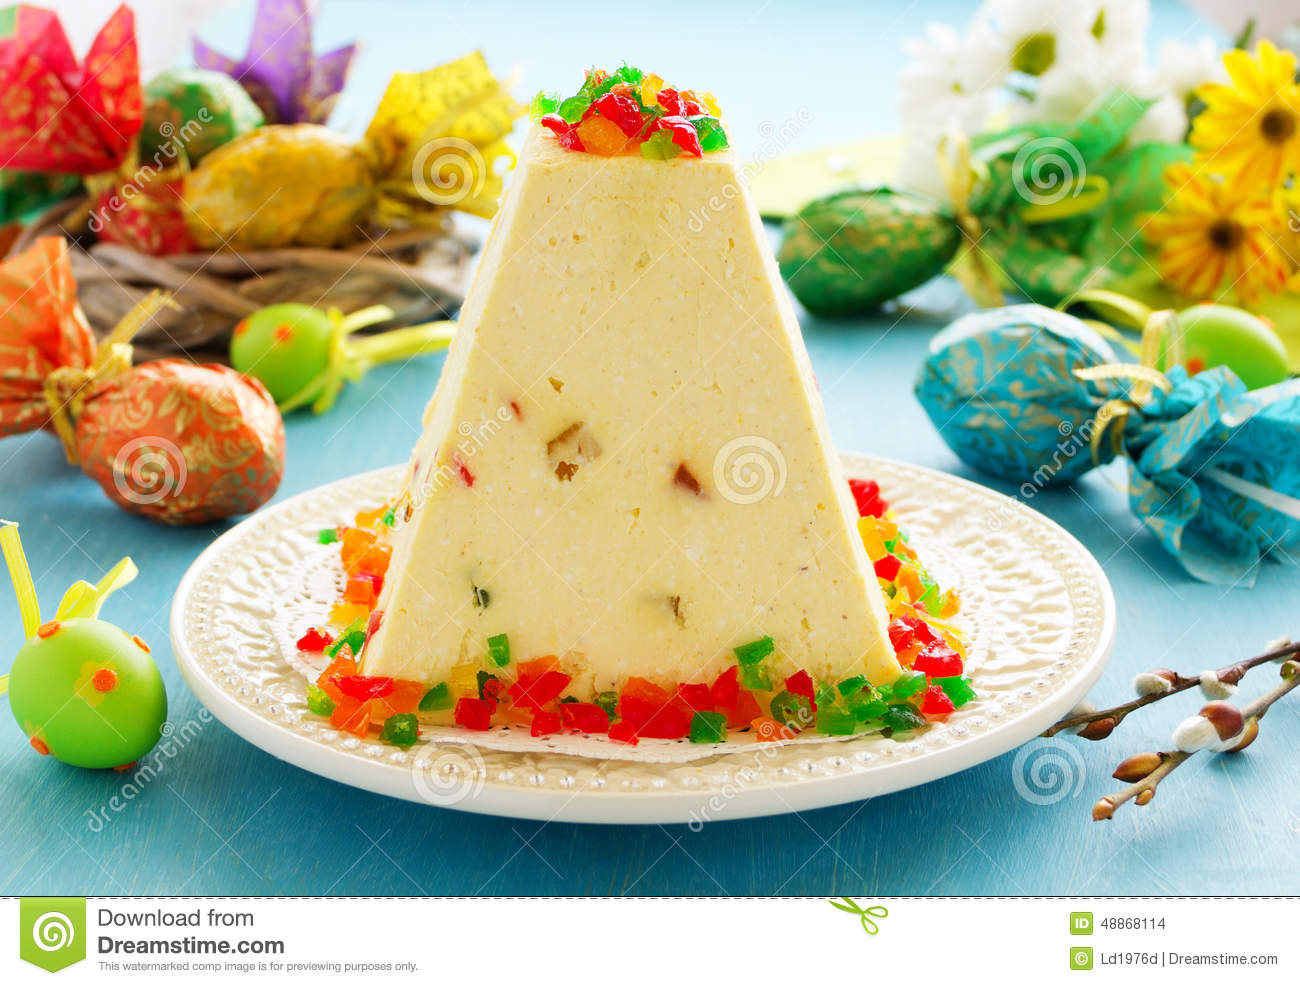 Traditional Easter dessert made from cottage cheese